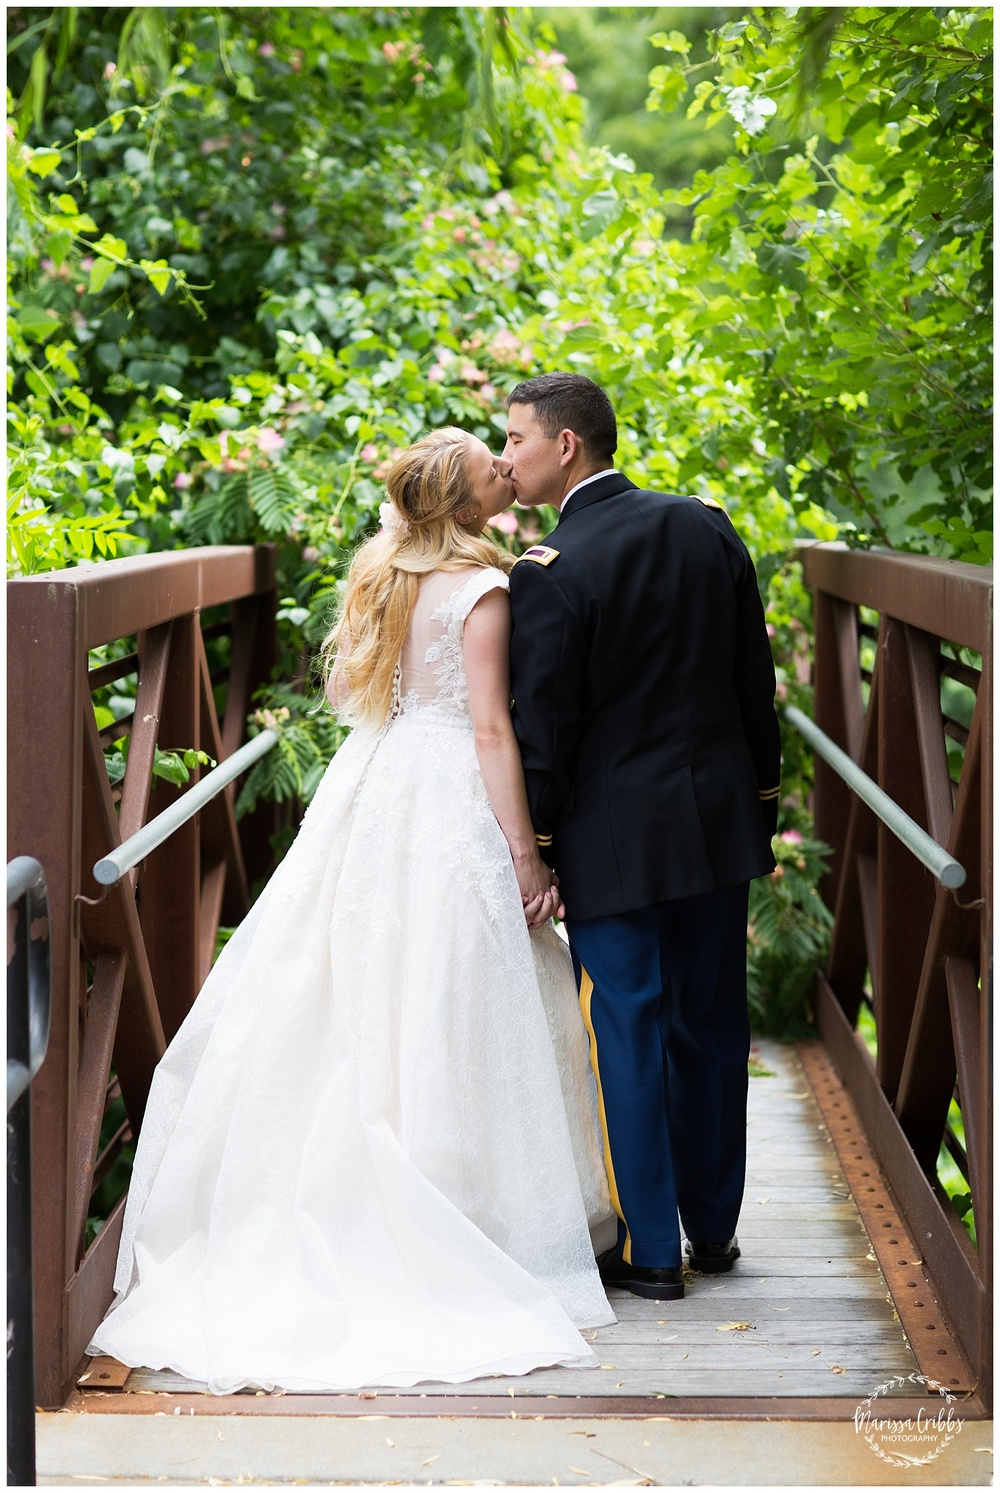 Jimenez Wedding | Marissa Cribbs Photography_0297.jpg